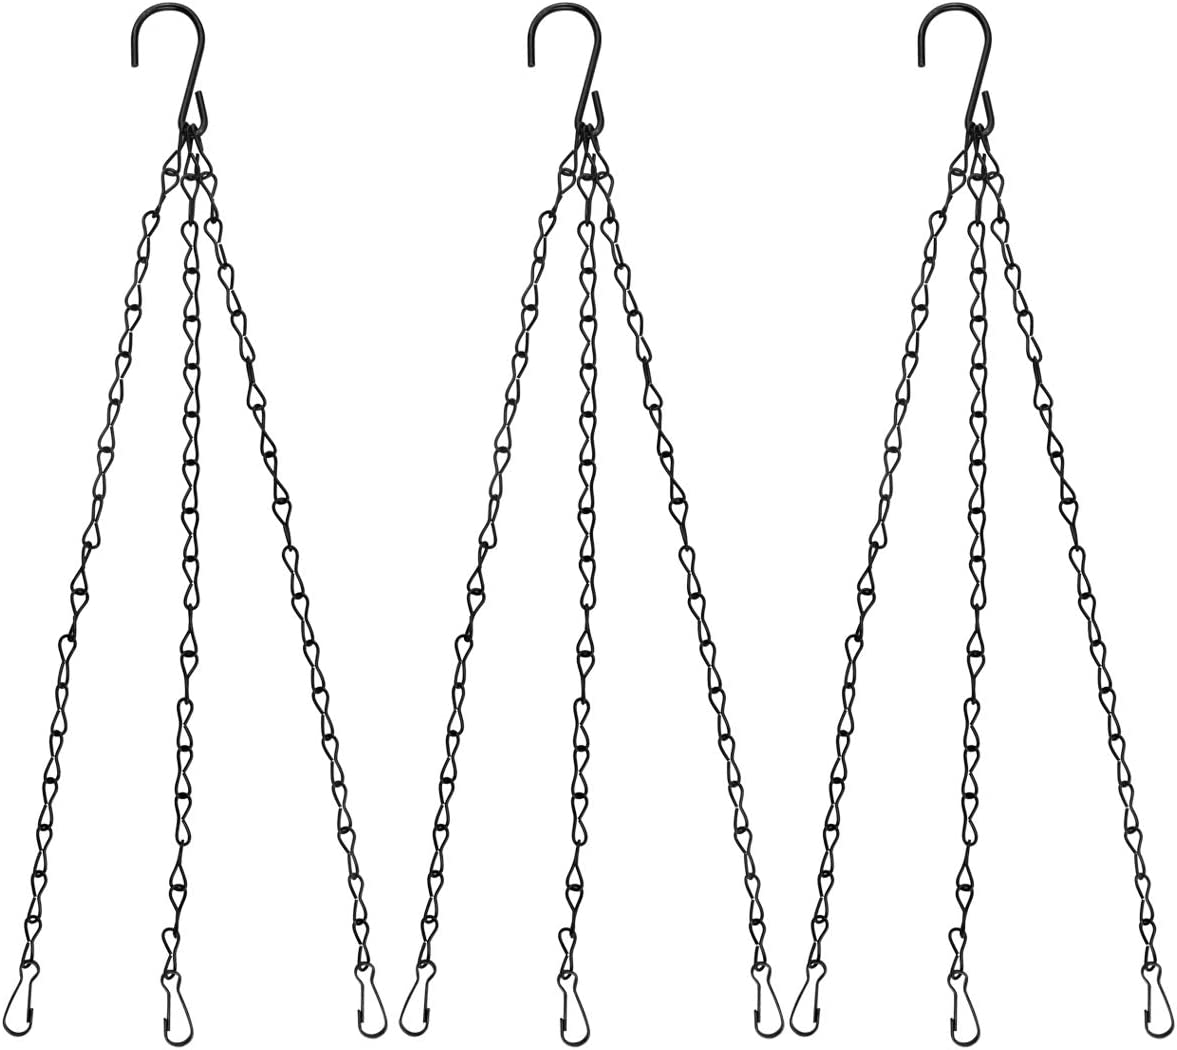 Plant Hanging Chains 3 Point Holder Anti-Rust Paint Black Chain for Bird Feeders Planters Lanterns Billboard Wind Chimes Flower Pot Garden Outdoor Use